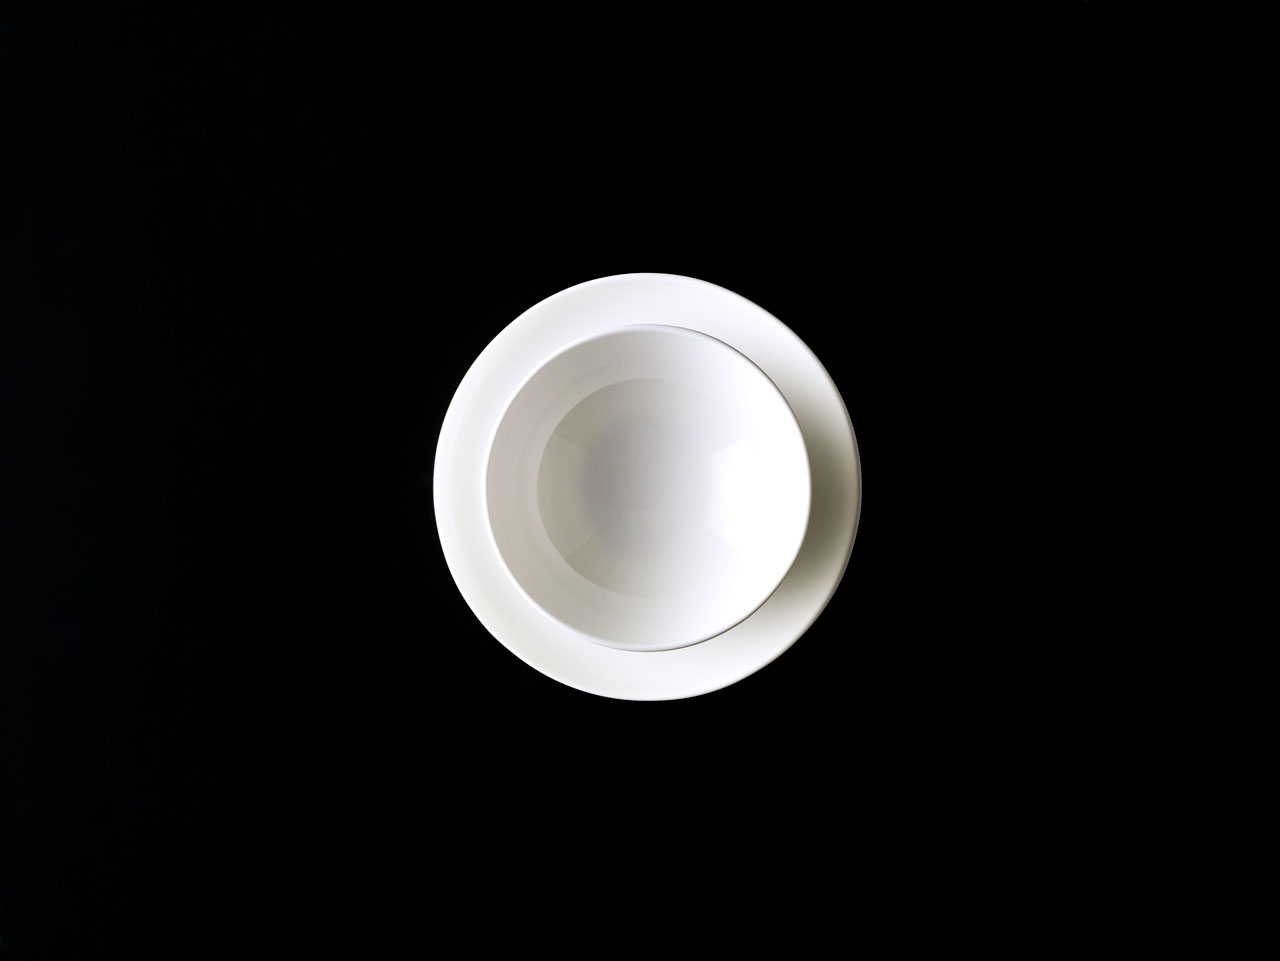 Bent Brandt tableware - TABL white bone china S1 bowl on S2 saucer